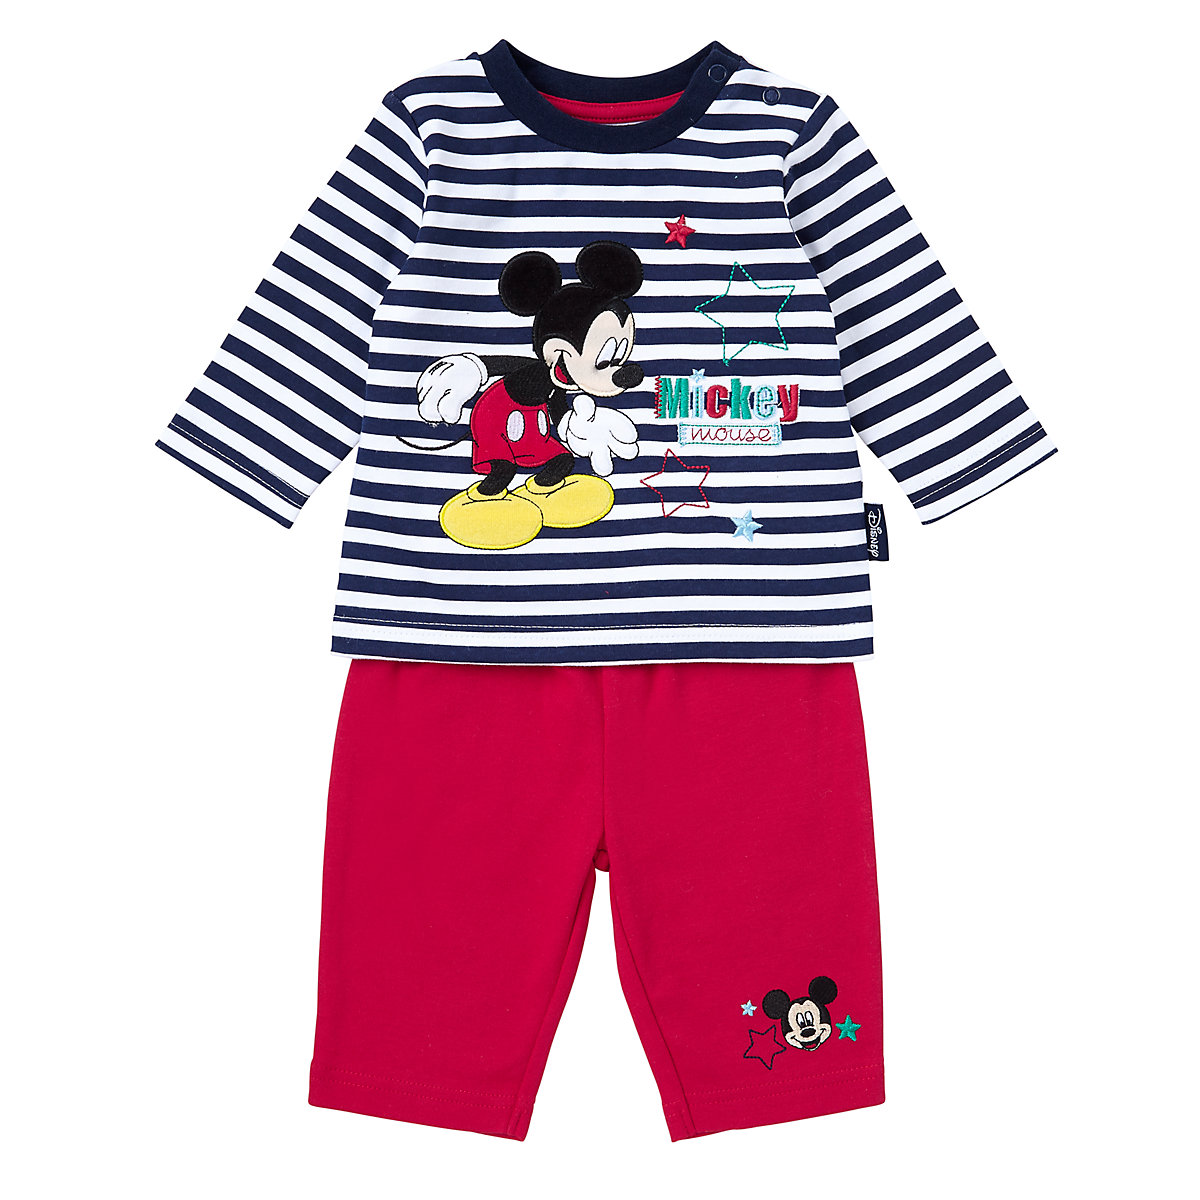 Disney Mickey Mouse Pyjamas - Disney Gifts